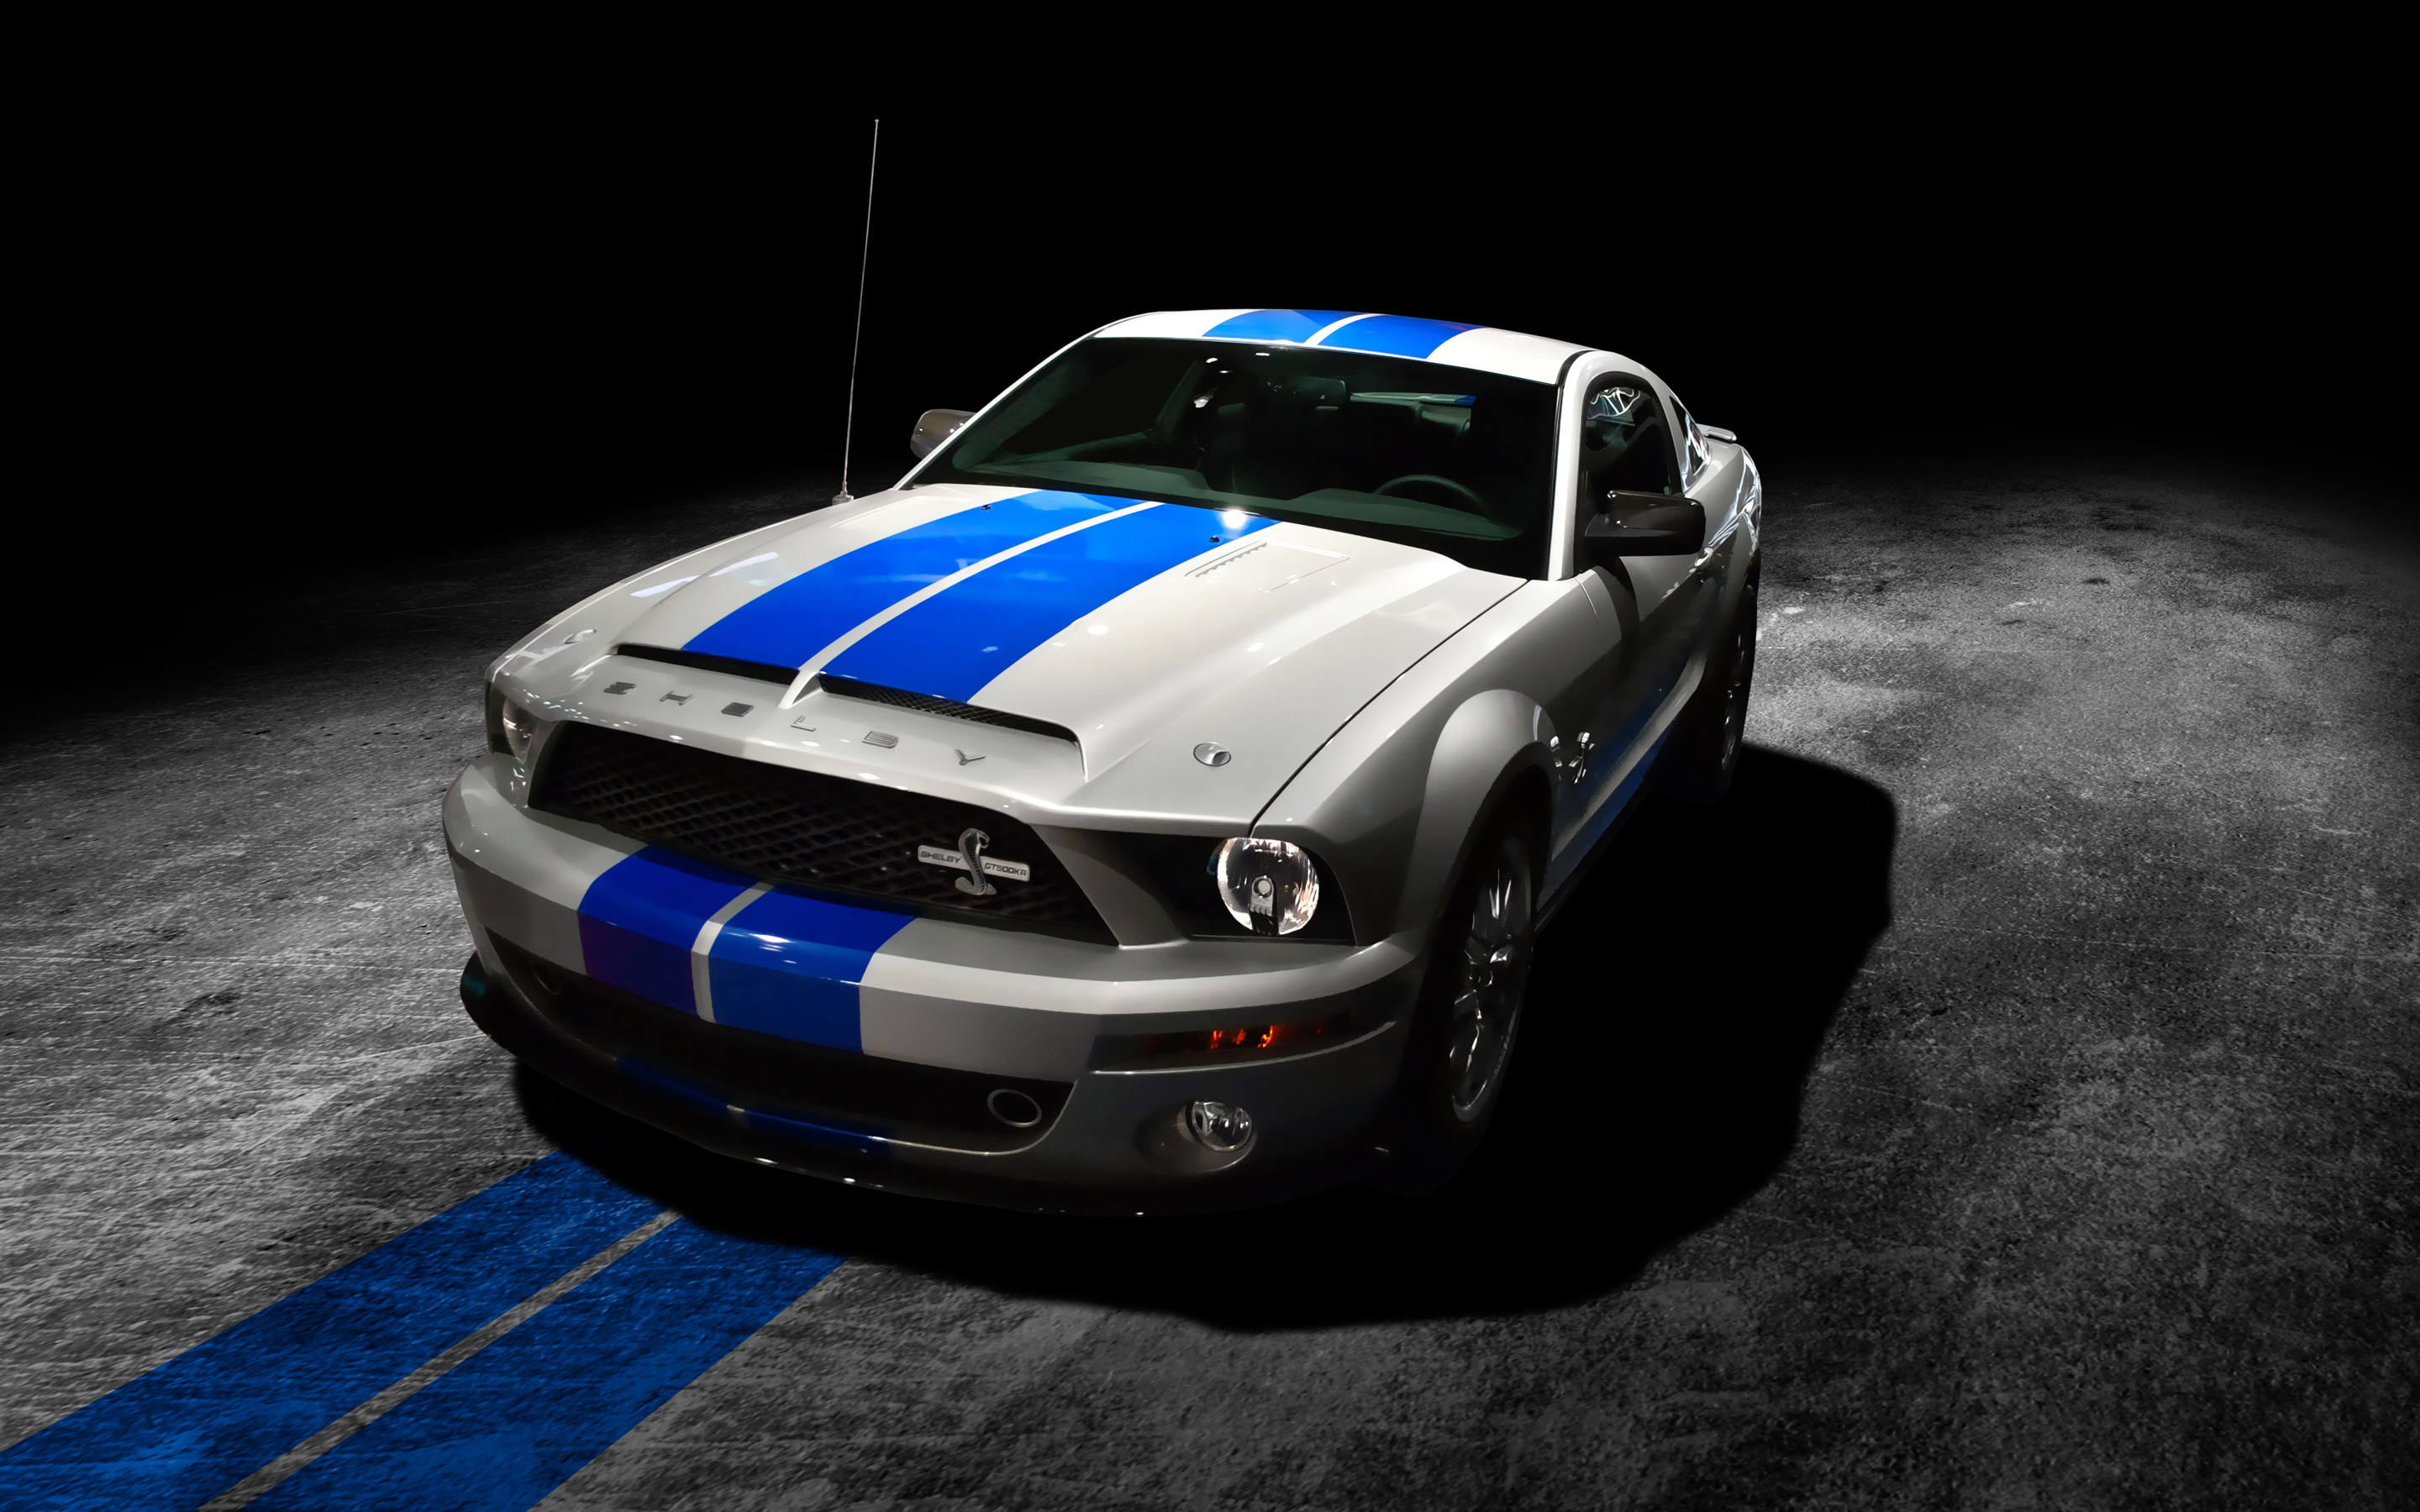 wwwhdwallpapersinford mustang shelby gt500 2013 wallpapershtml 2880x1800